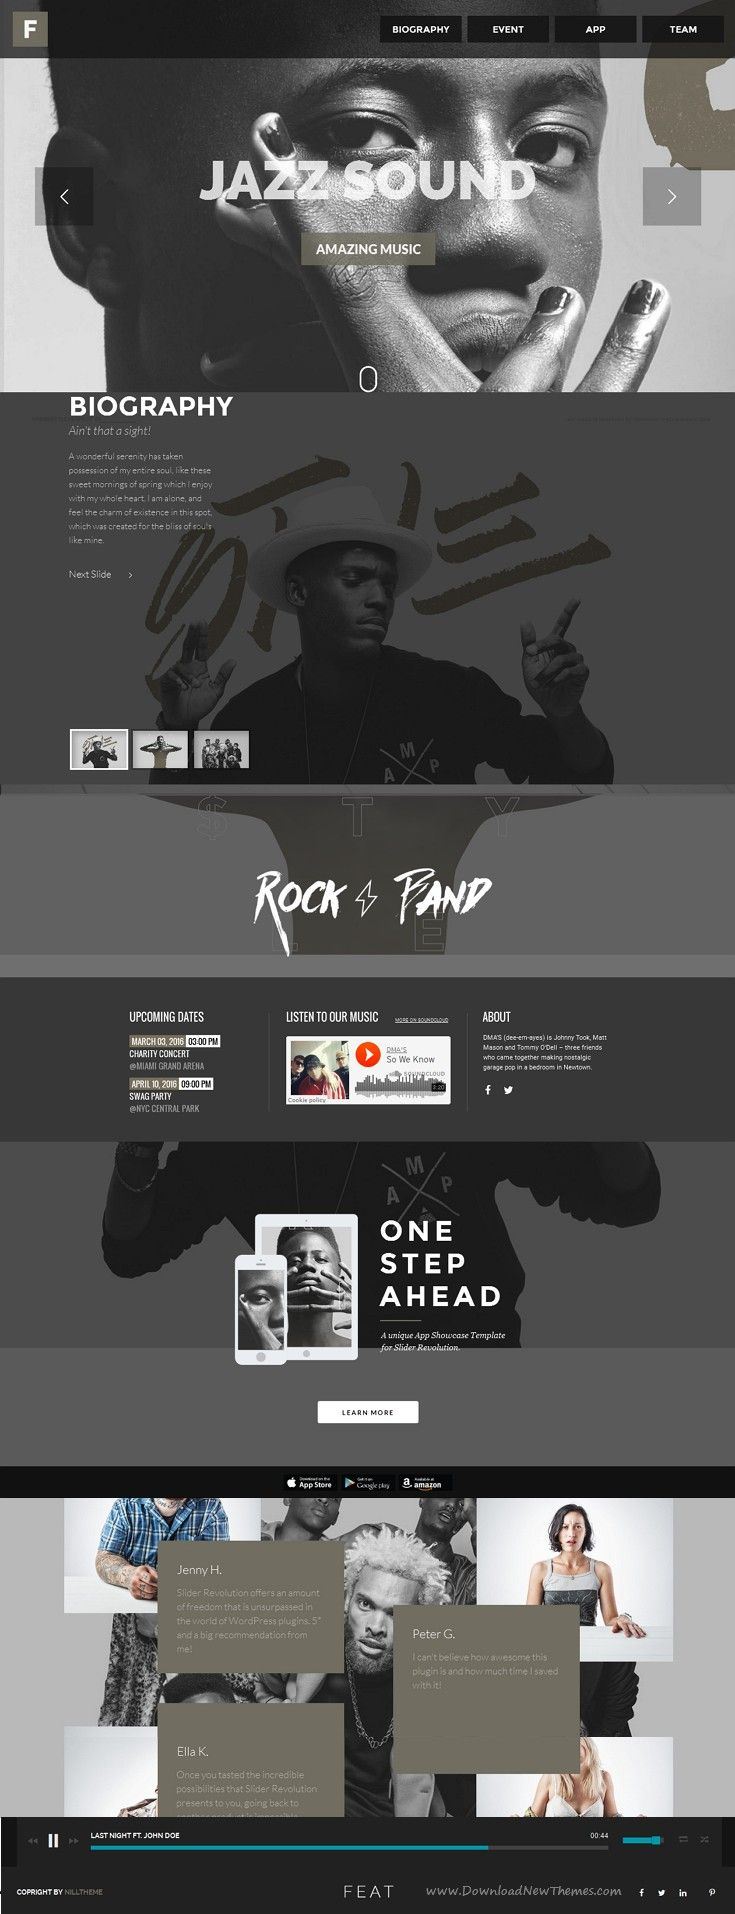 Feat is beautiful WordPress Themes For Musicians, #music, band, events, radio, magazine and #news #website. Download Now!